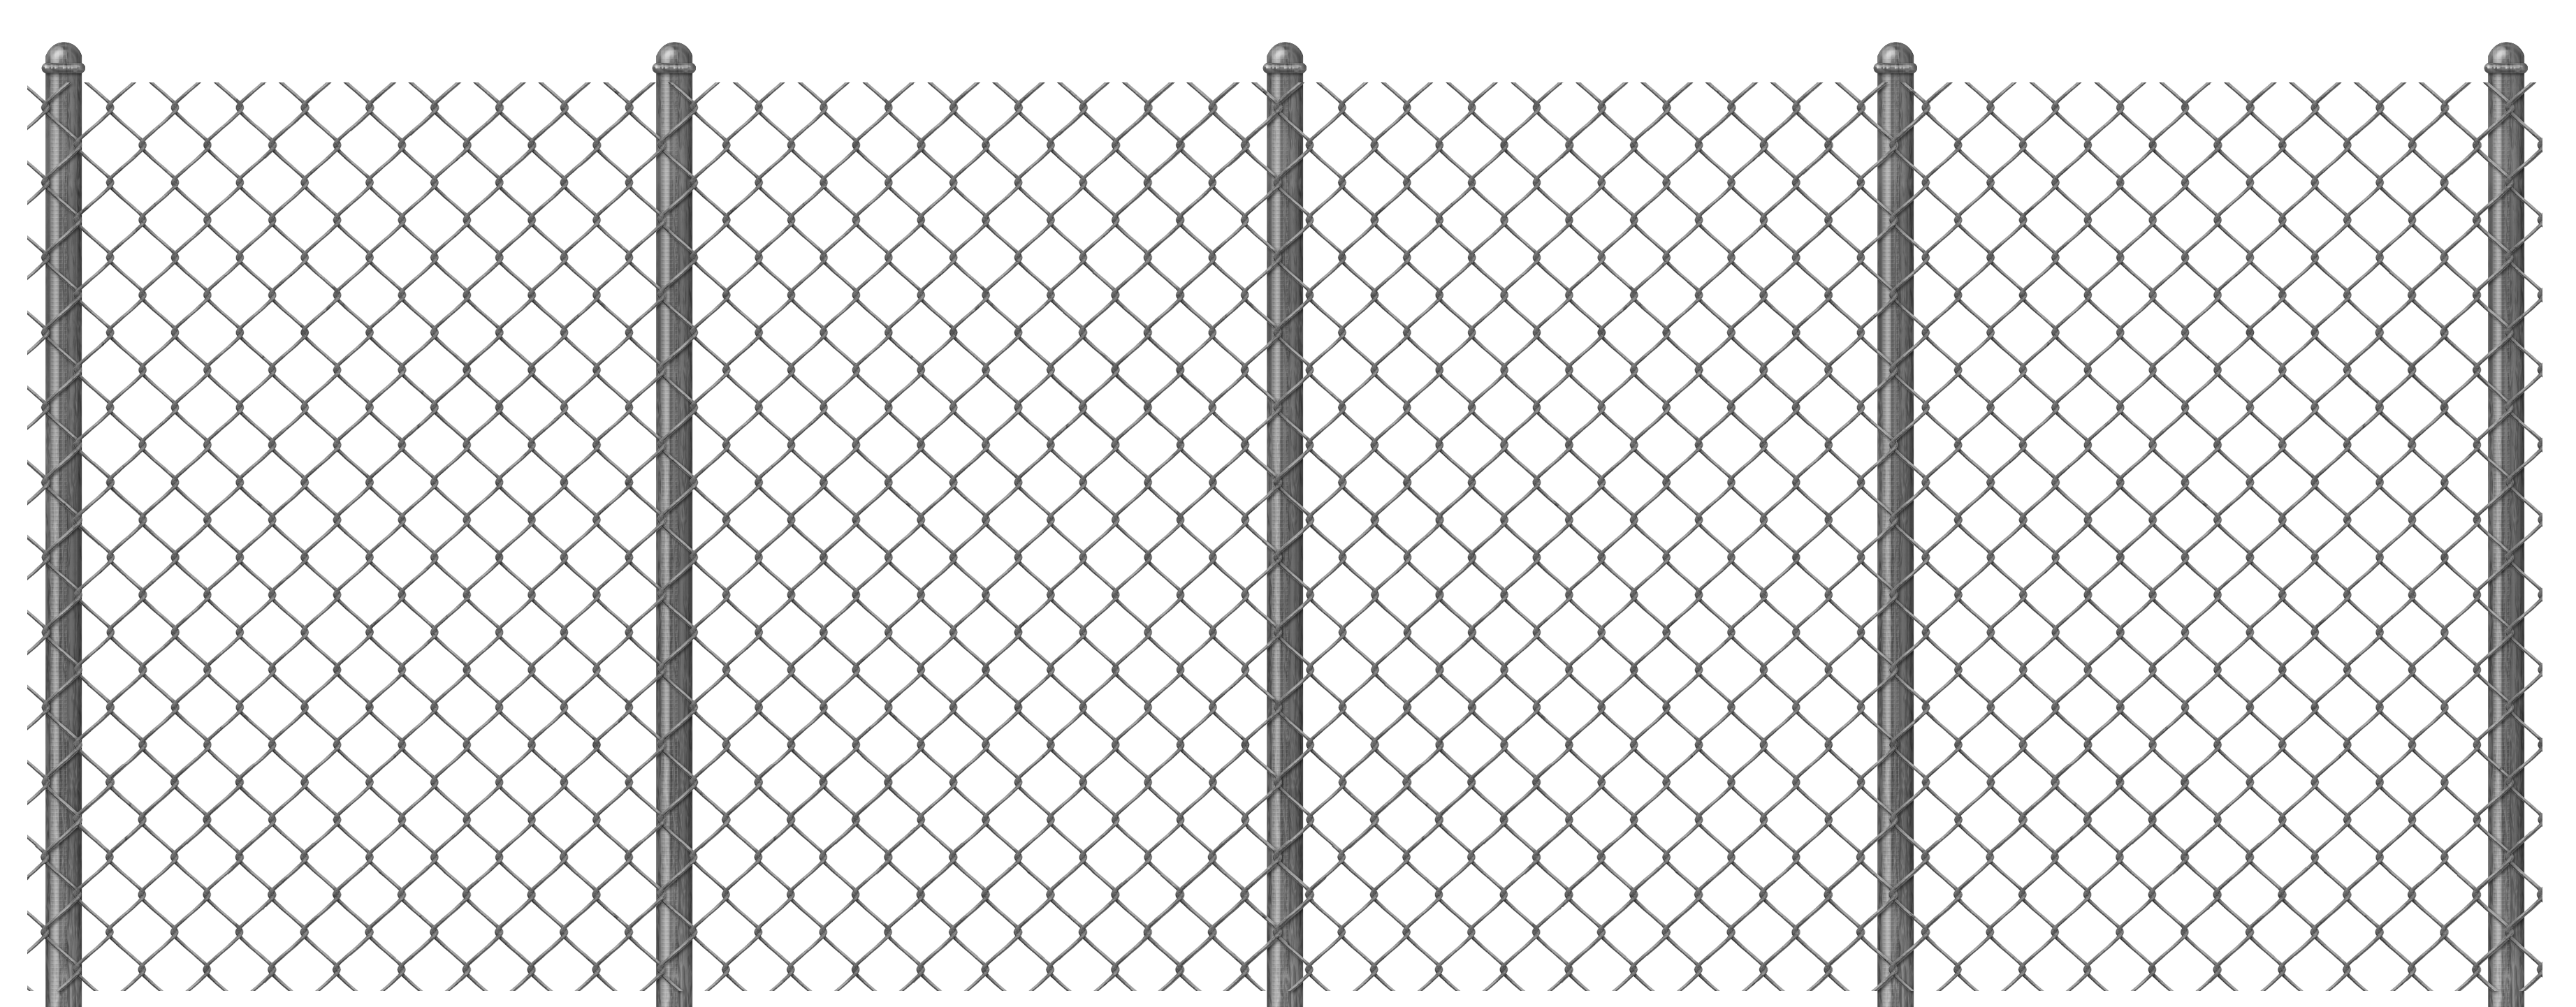 Transparent link clipart gallery. Chain fence png clipart library